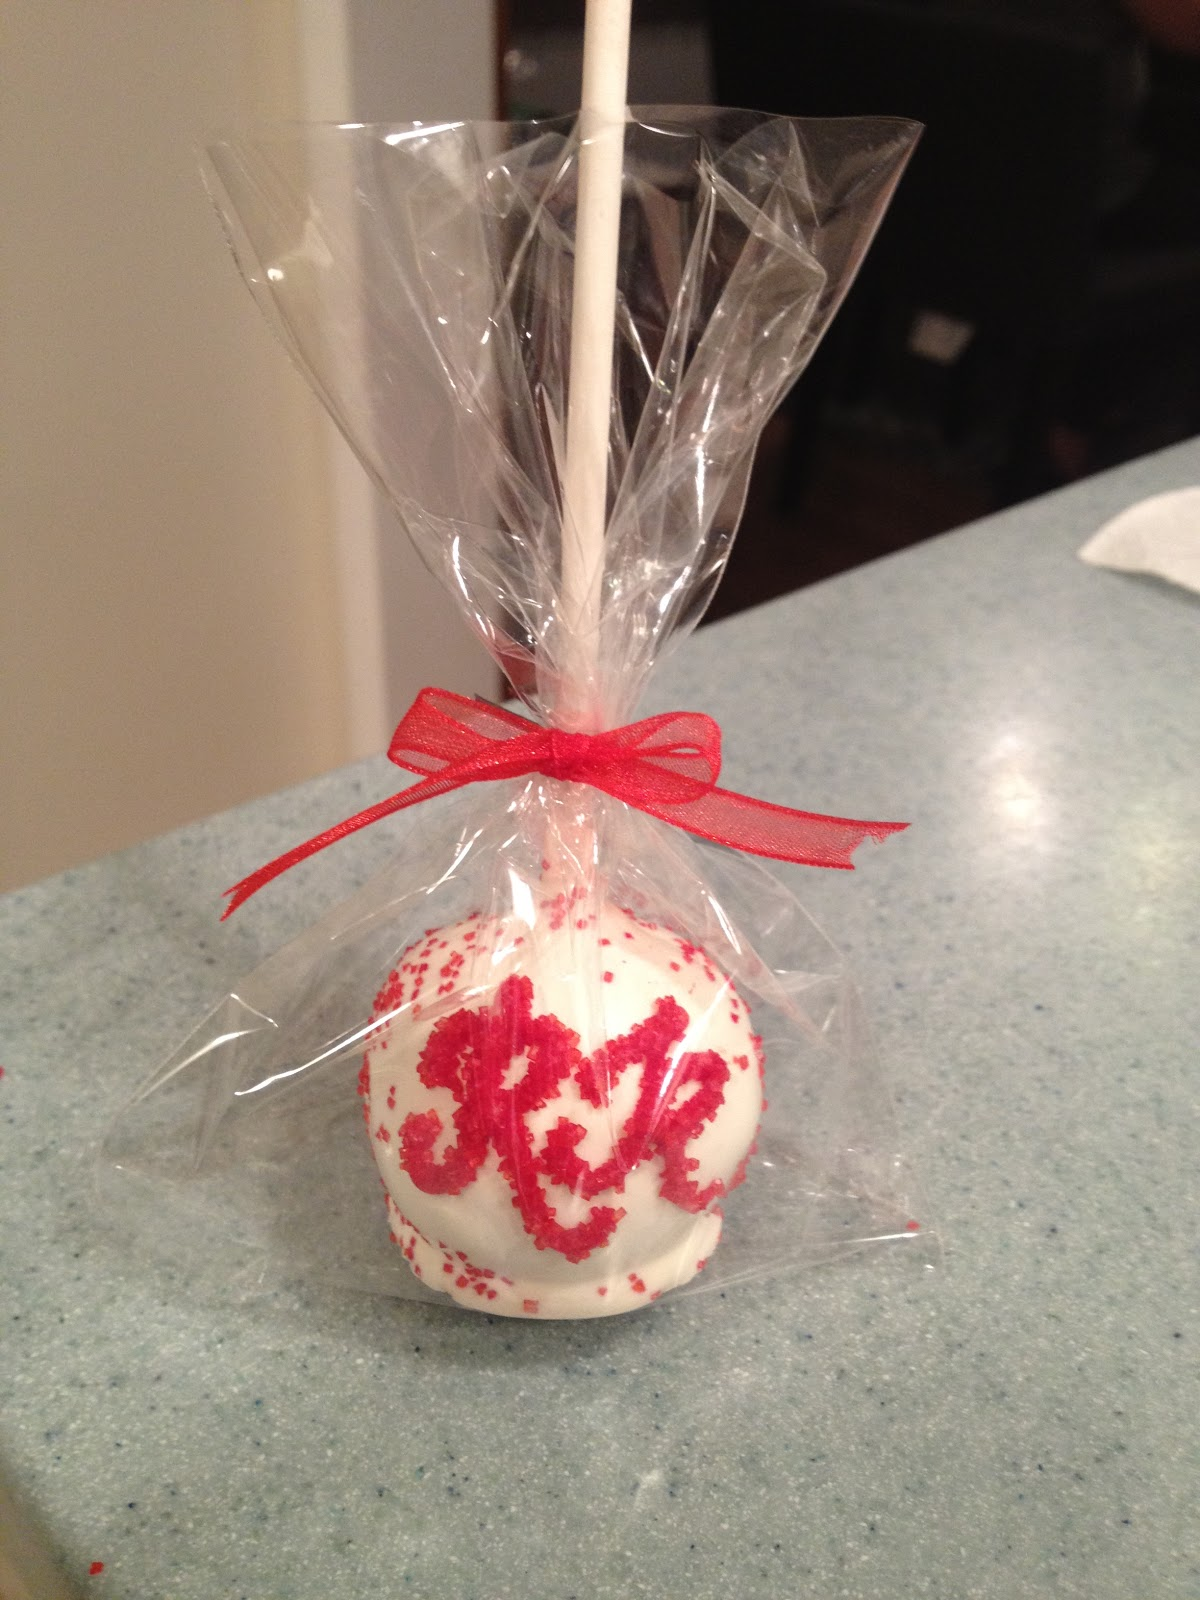 Best Red Velvet Cake Pops - Any Tots